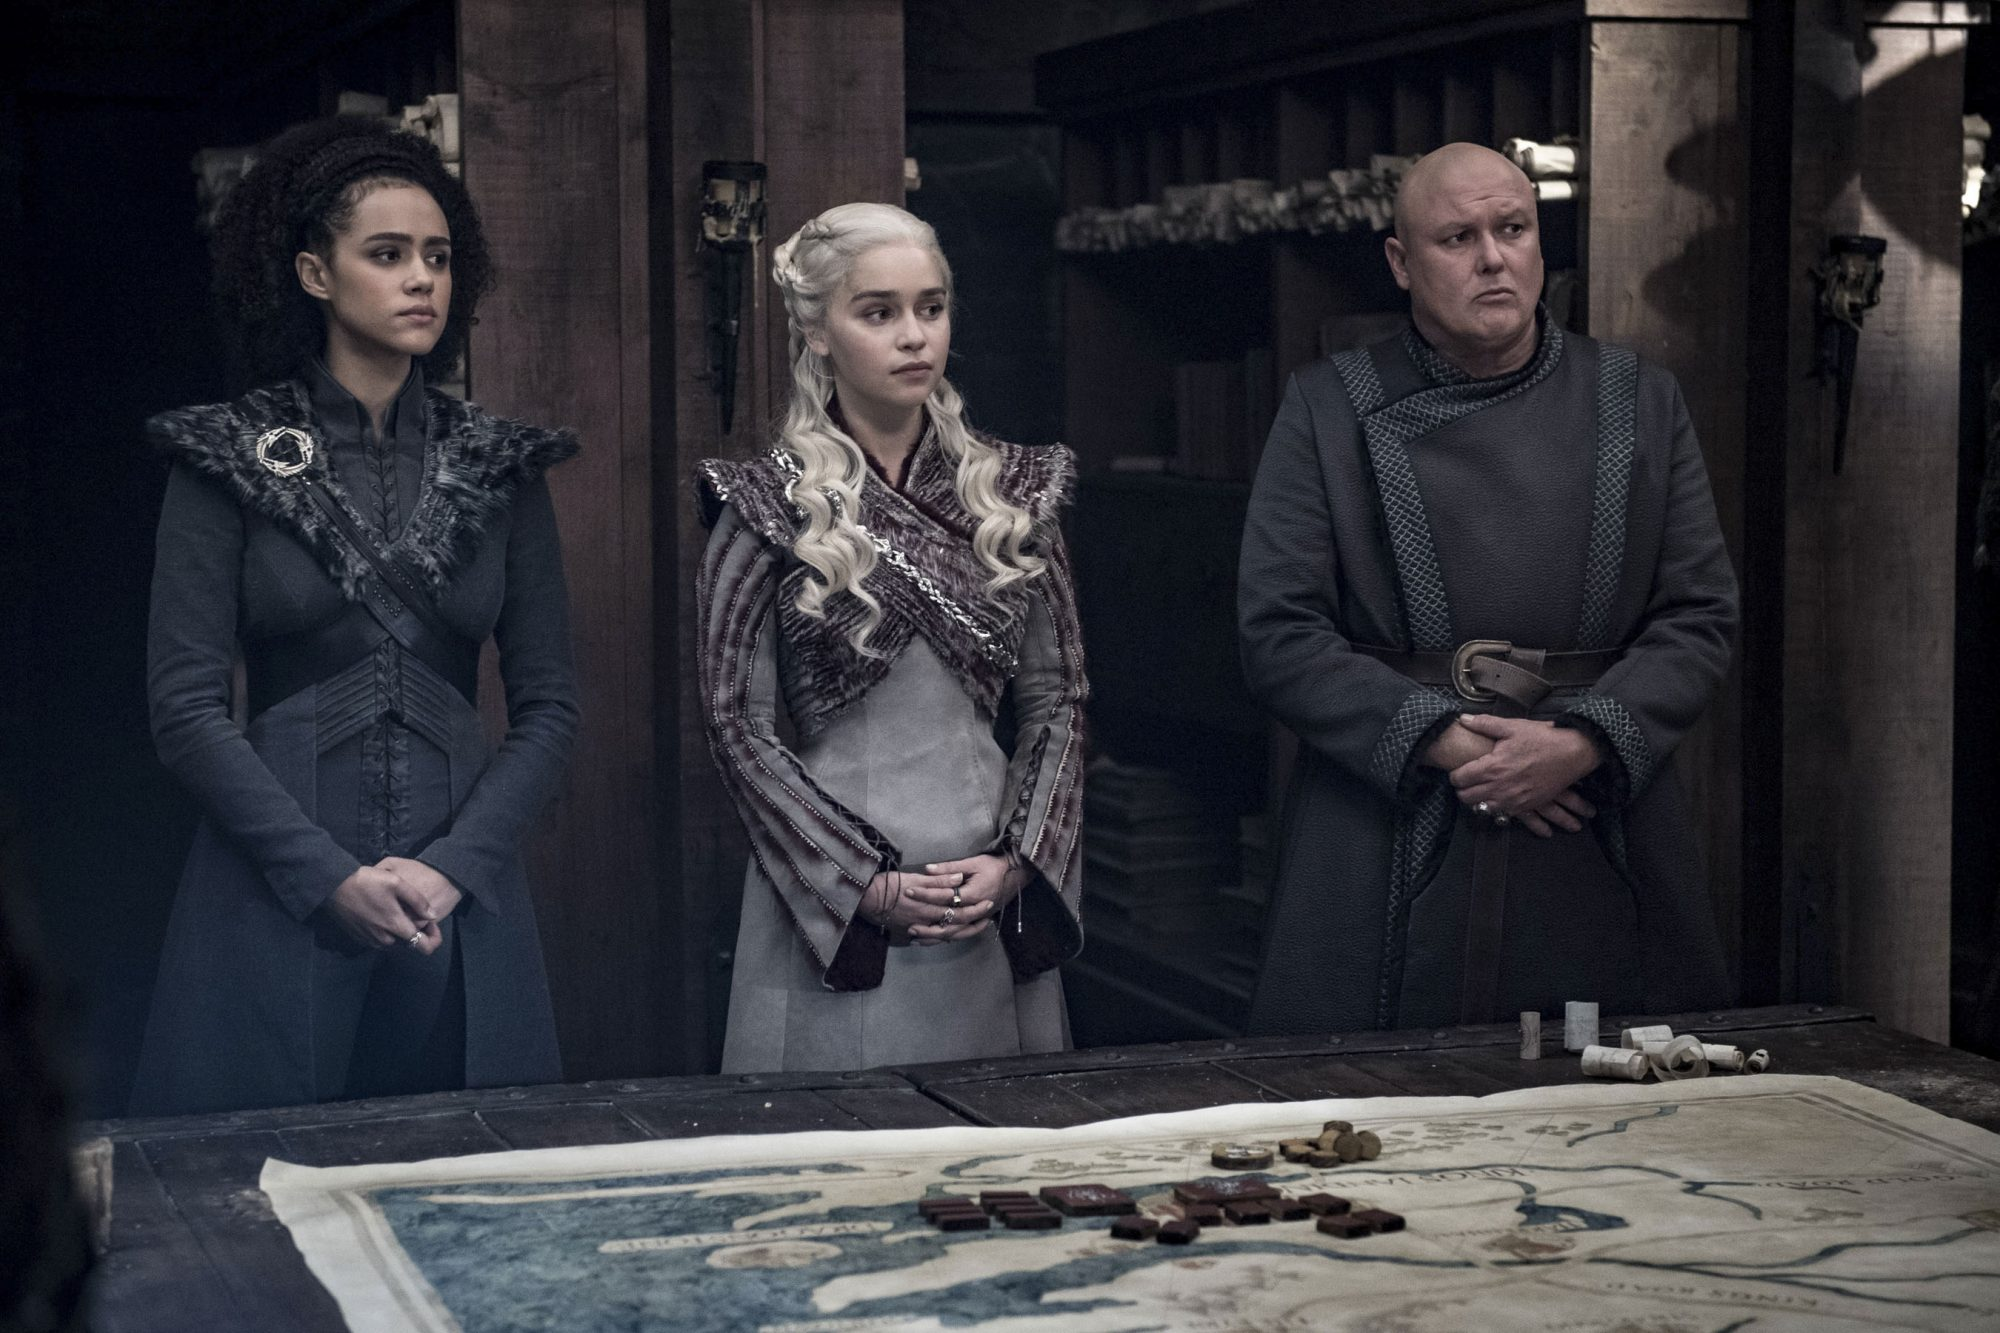 Game of Thrones Season 8, Episode 4 (L to R) Nathalie Emmanuel as Missandei, Emilia Clarke as Daenerys Targaryen, and Conleth Hill as Varys - Photo: Helen Sloan/HBO